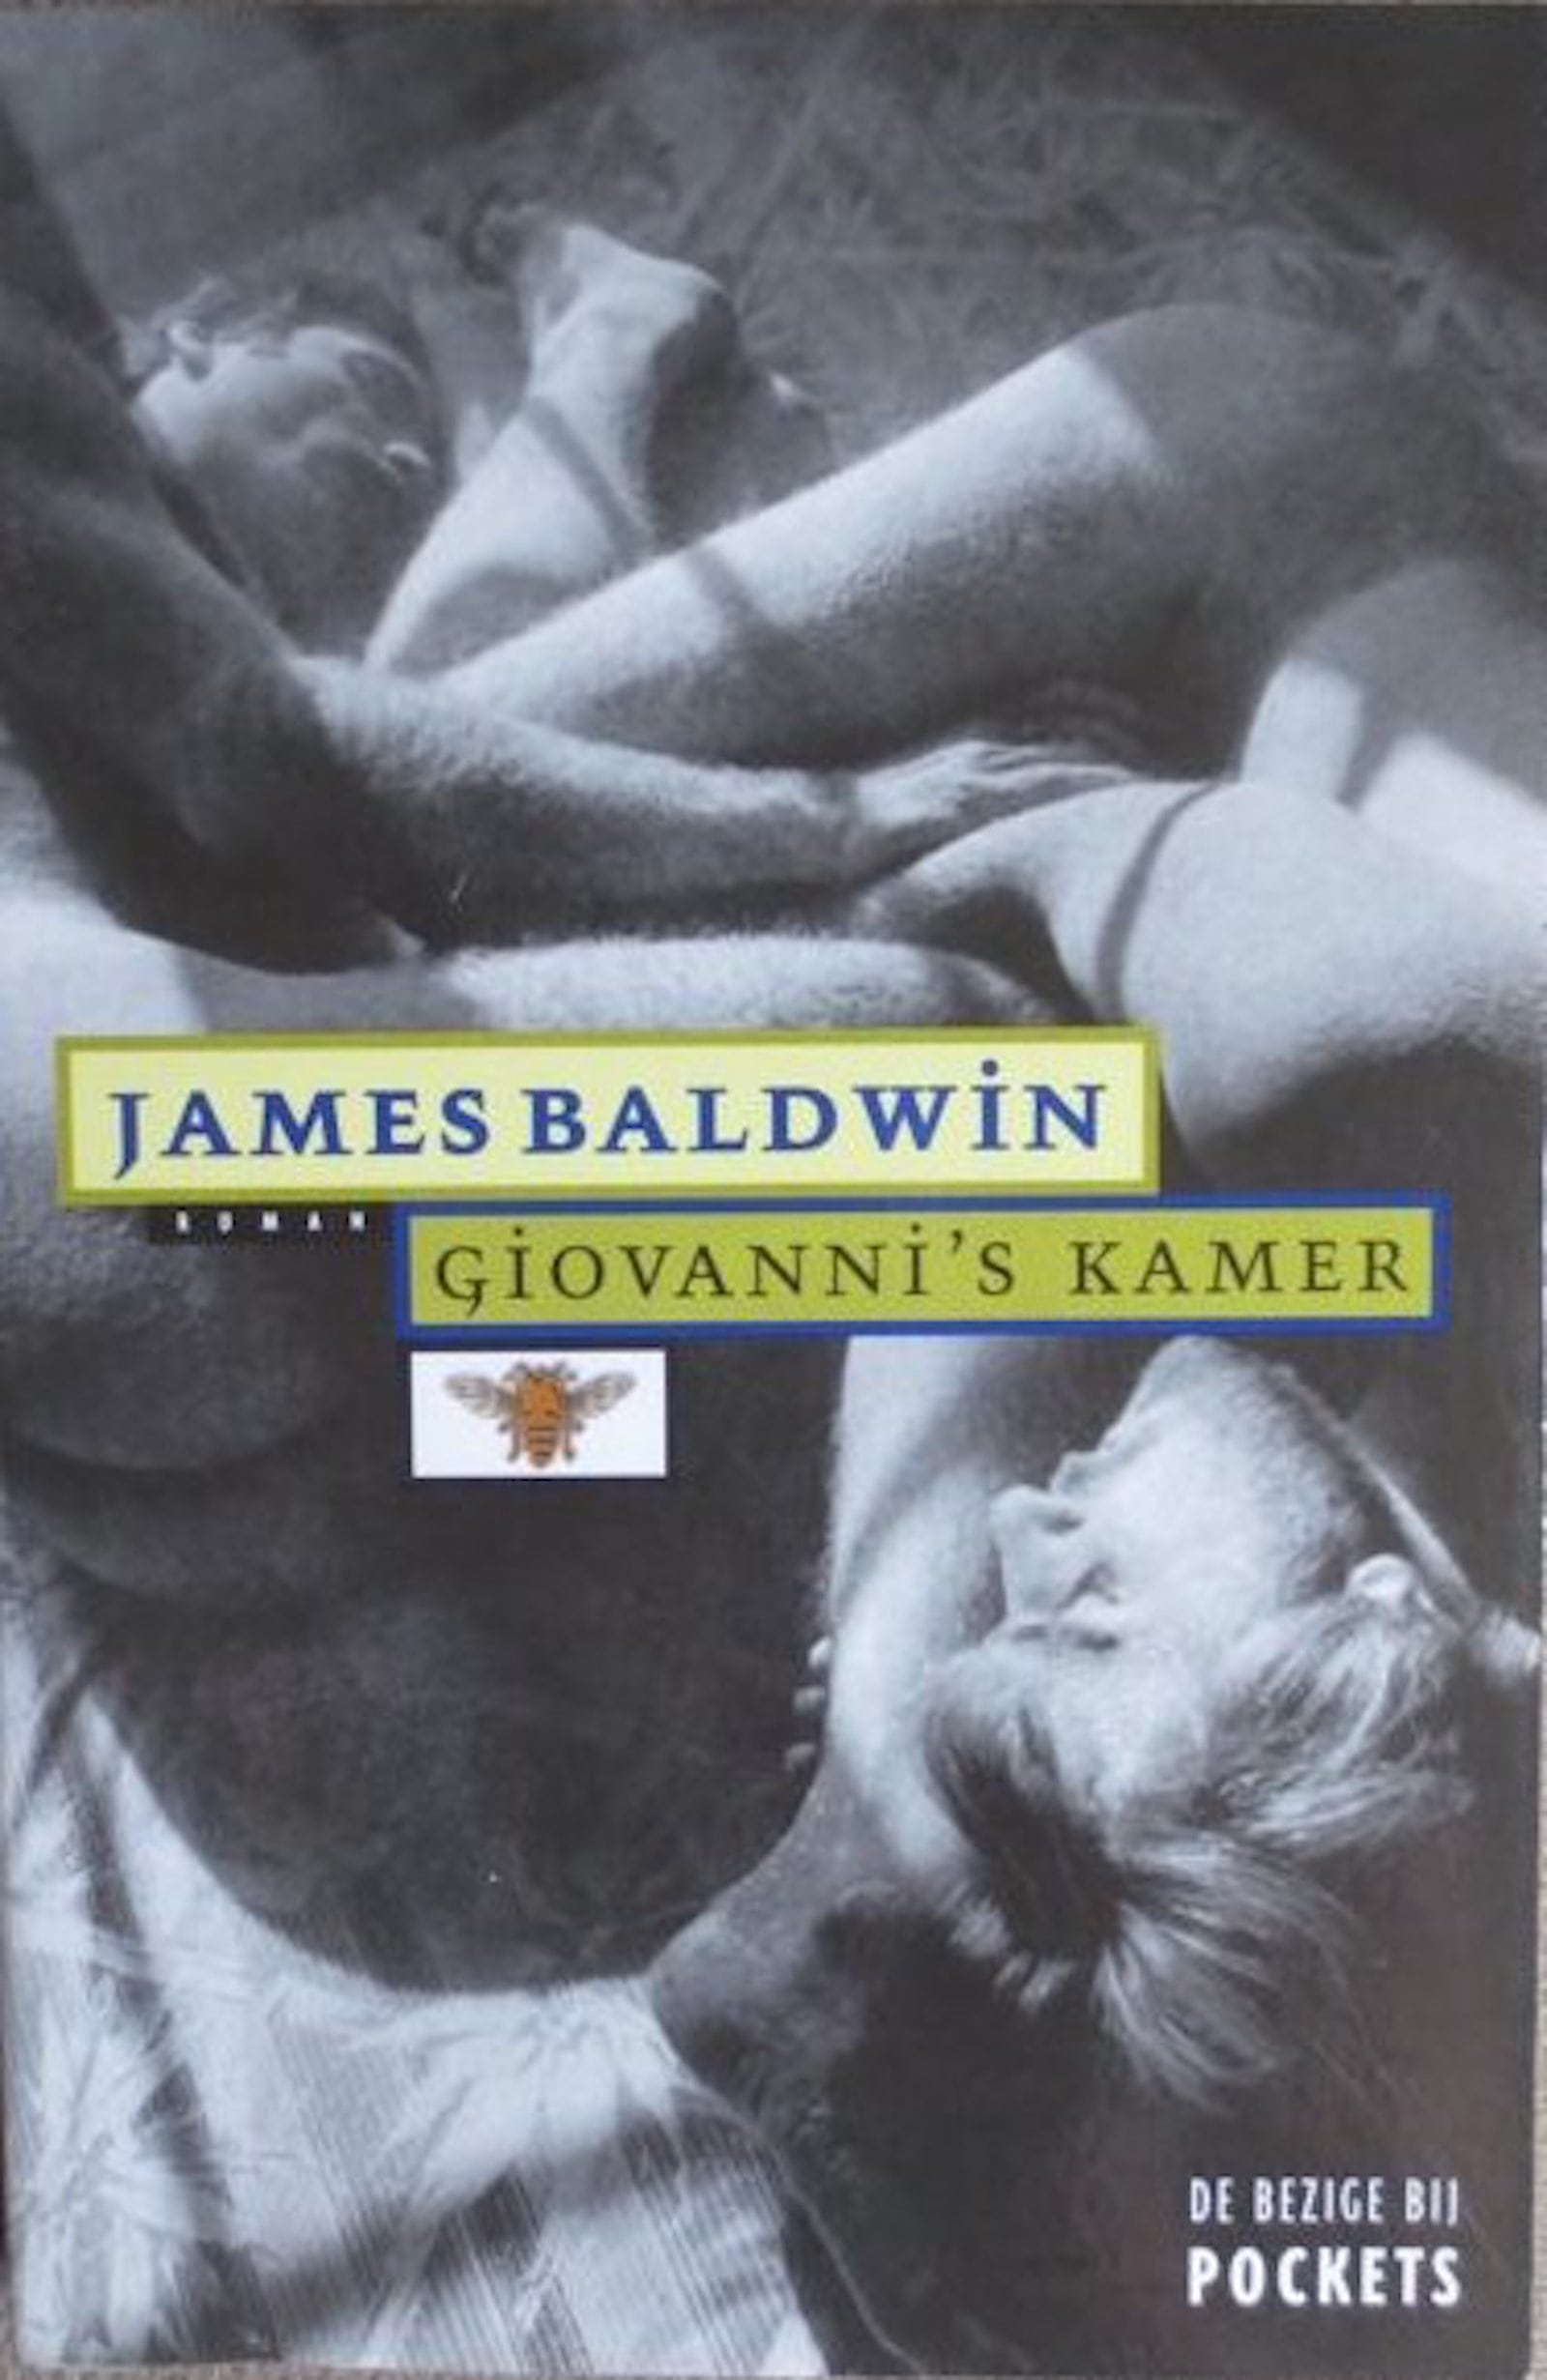 Giovanni's kamer - James Baldwin